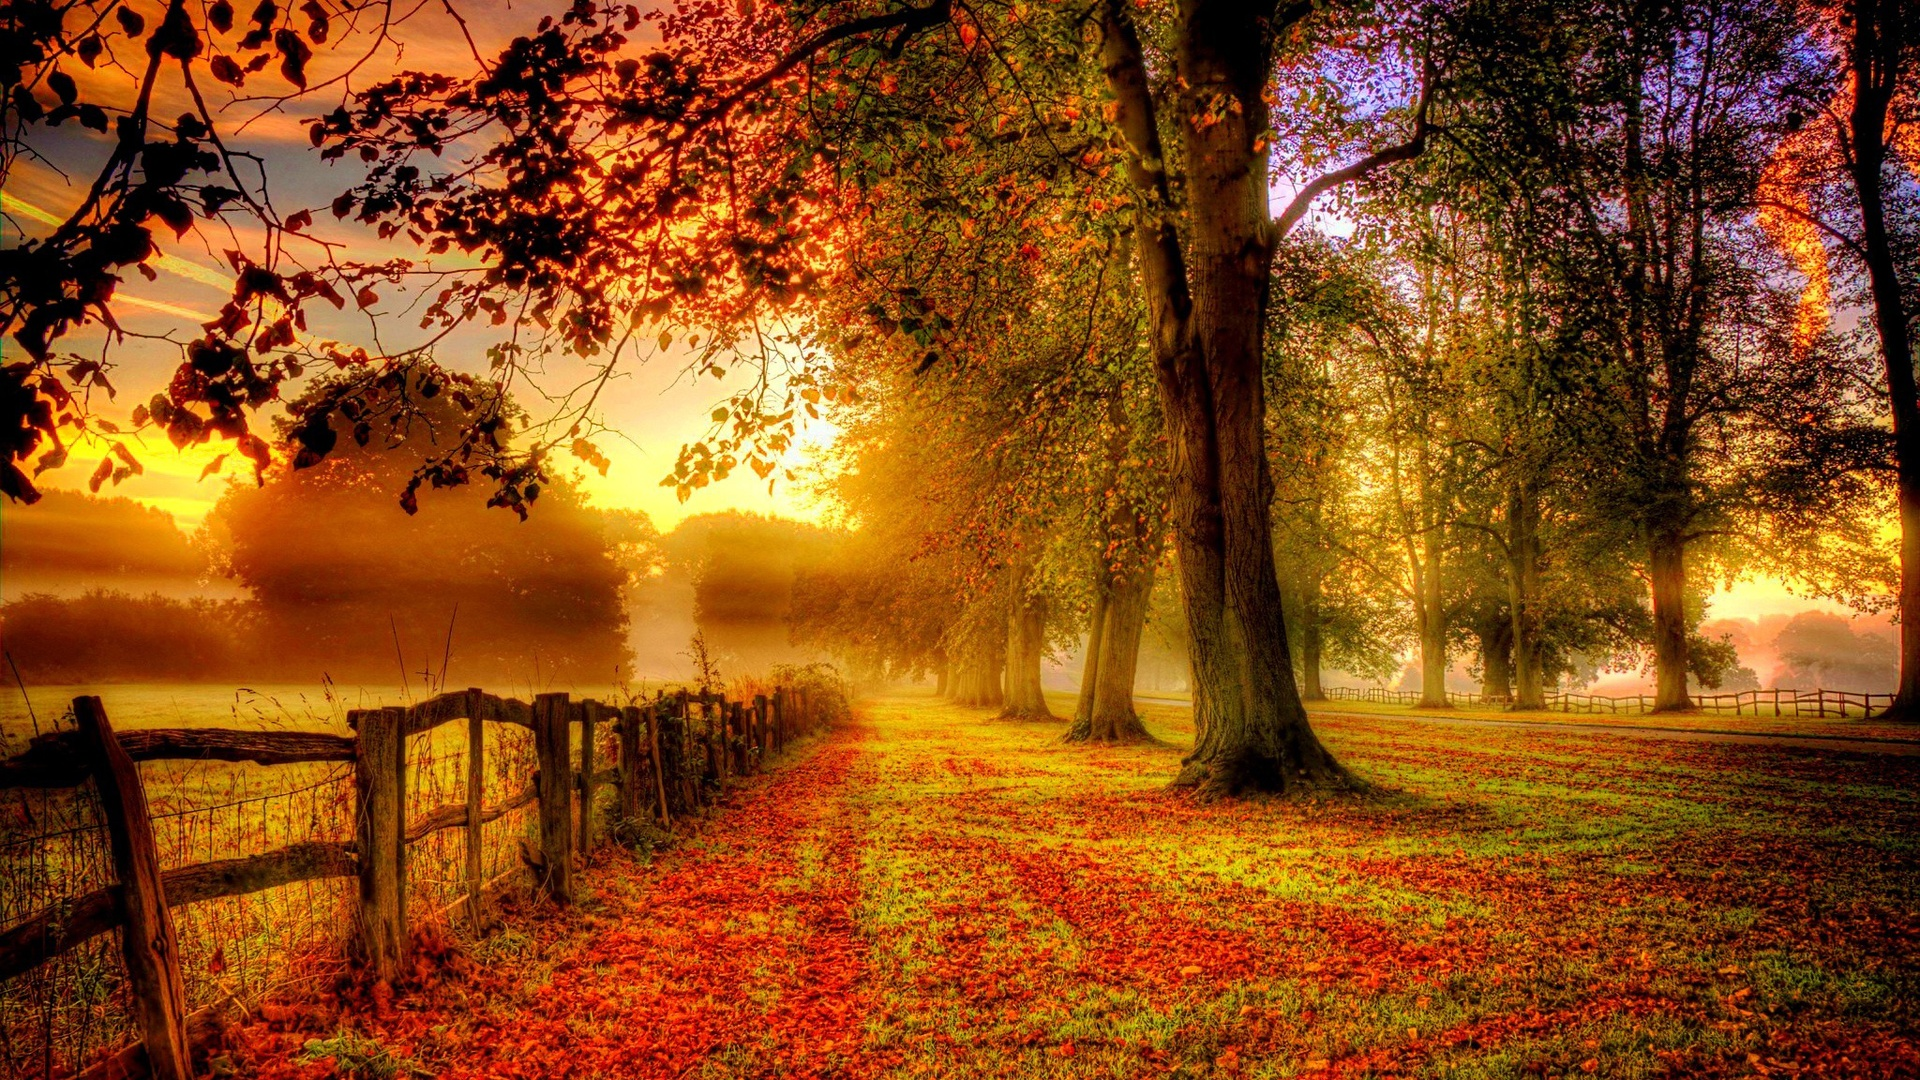 Free Download Autumn Scenery Red Leaves Road Fence Wallpaper Desktop Wallpapers 1920x1080 For Your Desktop Mobile Tablet Explore 45 Fall Scenery Wallpaper Desktop Fall Scenery Backgrounds Fall Scenery Wallpaper